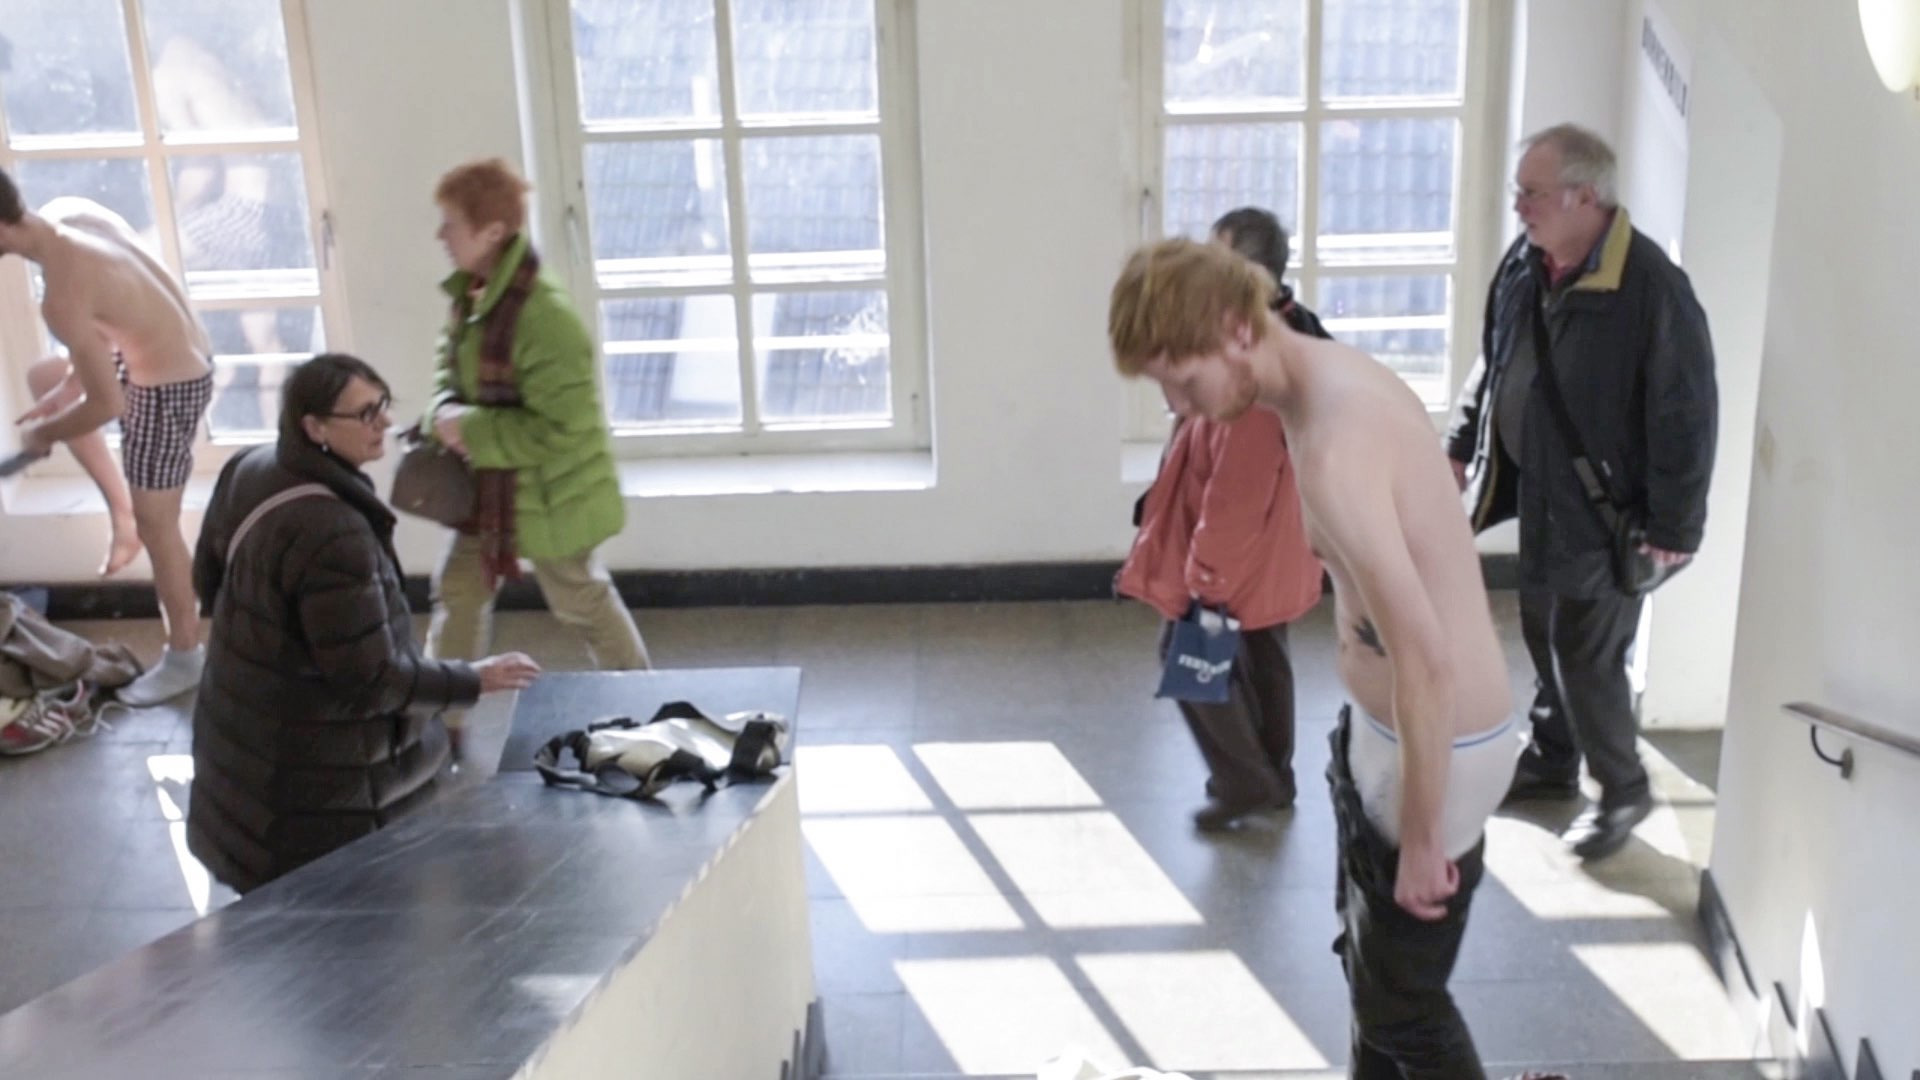 dress exchange, action view, video still, 2015